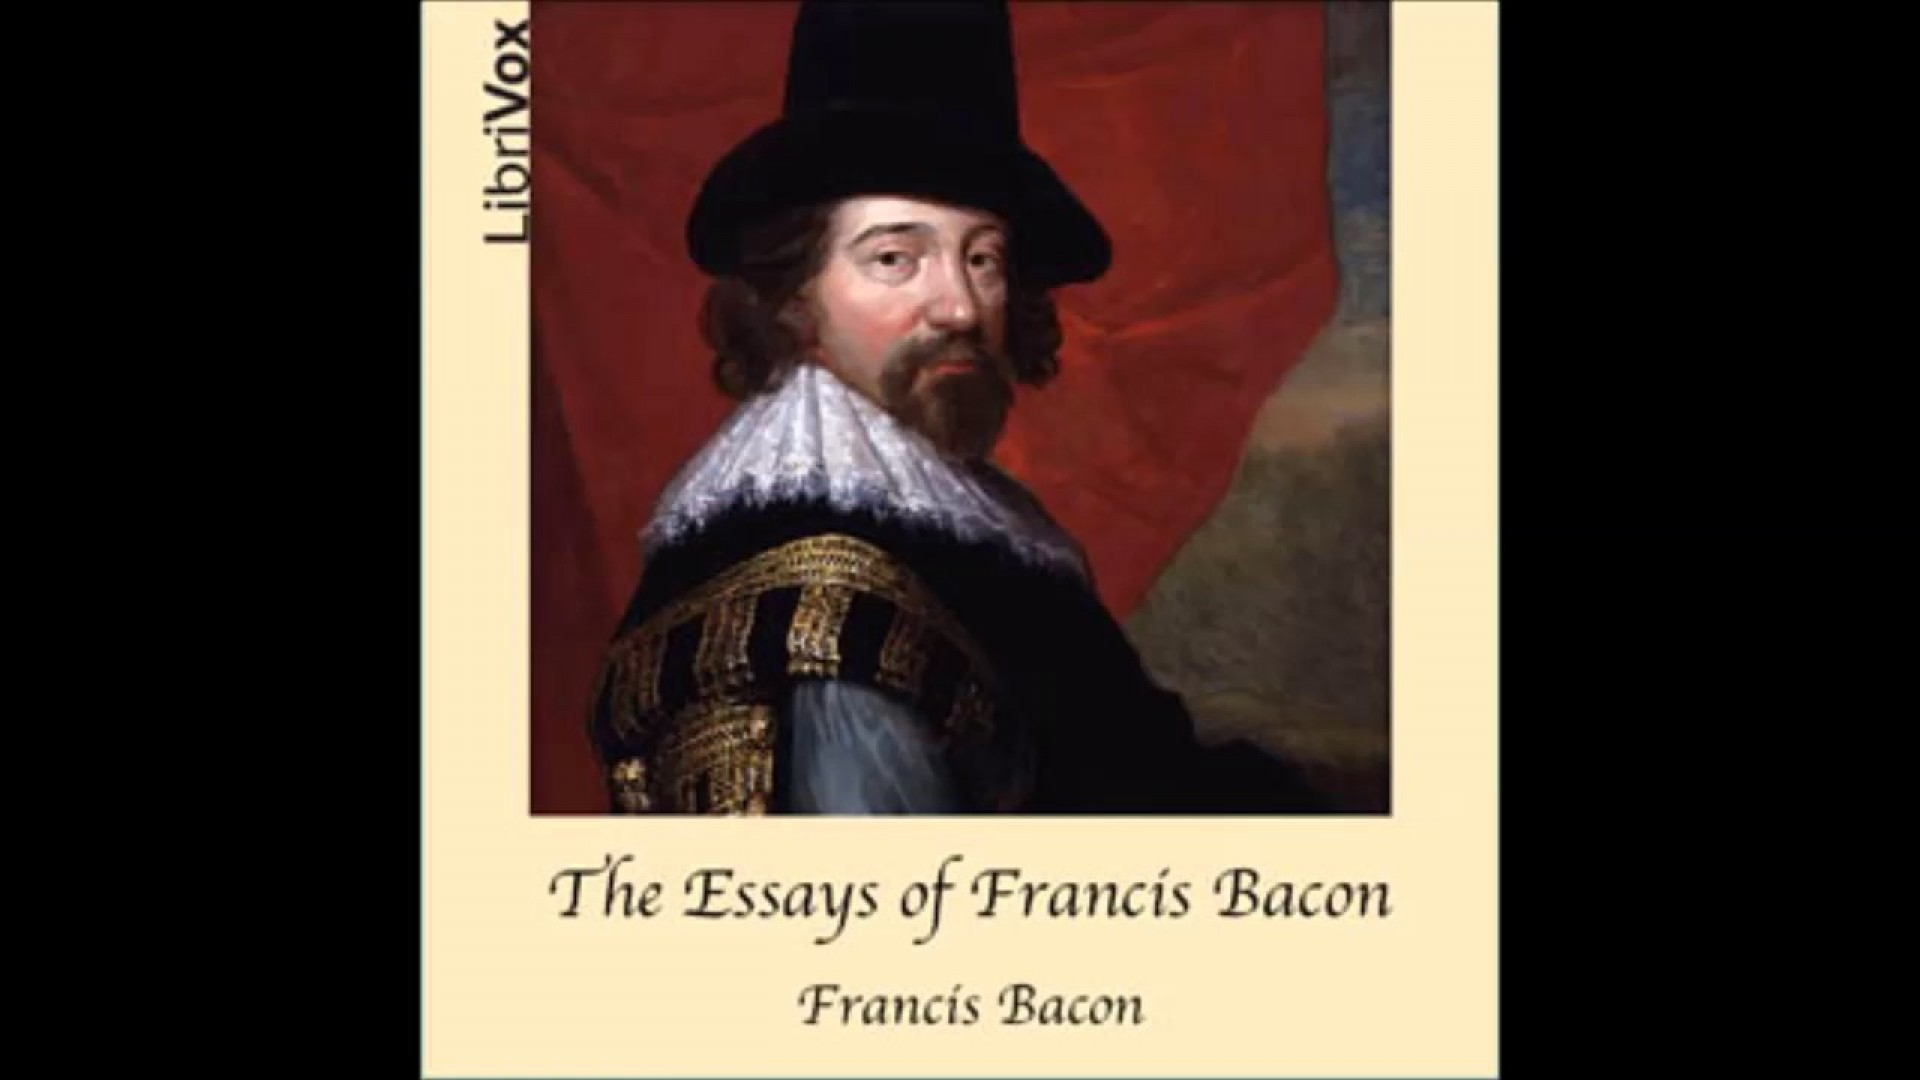 010 Essay Example Francis Bacon Essays Awesome Analysis Pdf Of Truth Download Critical Appreciation Bacon's 1920